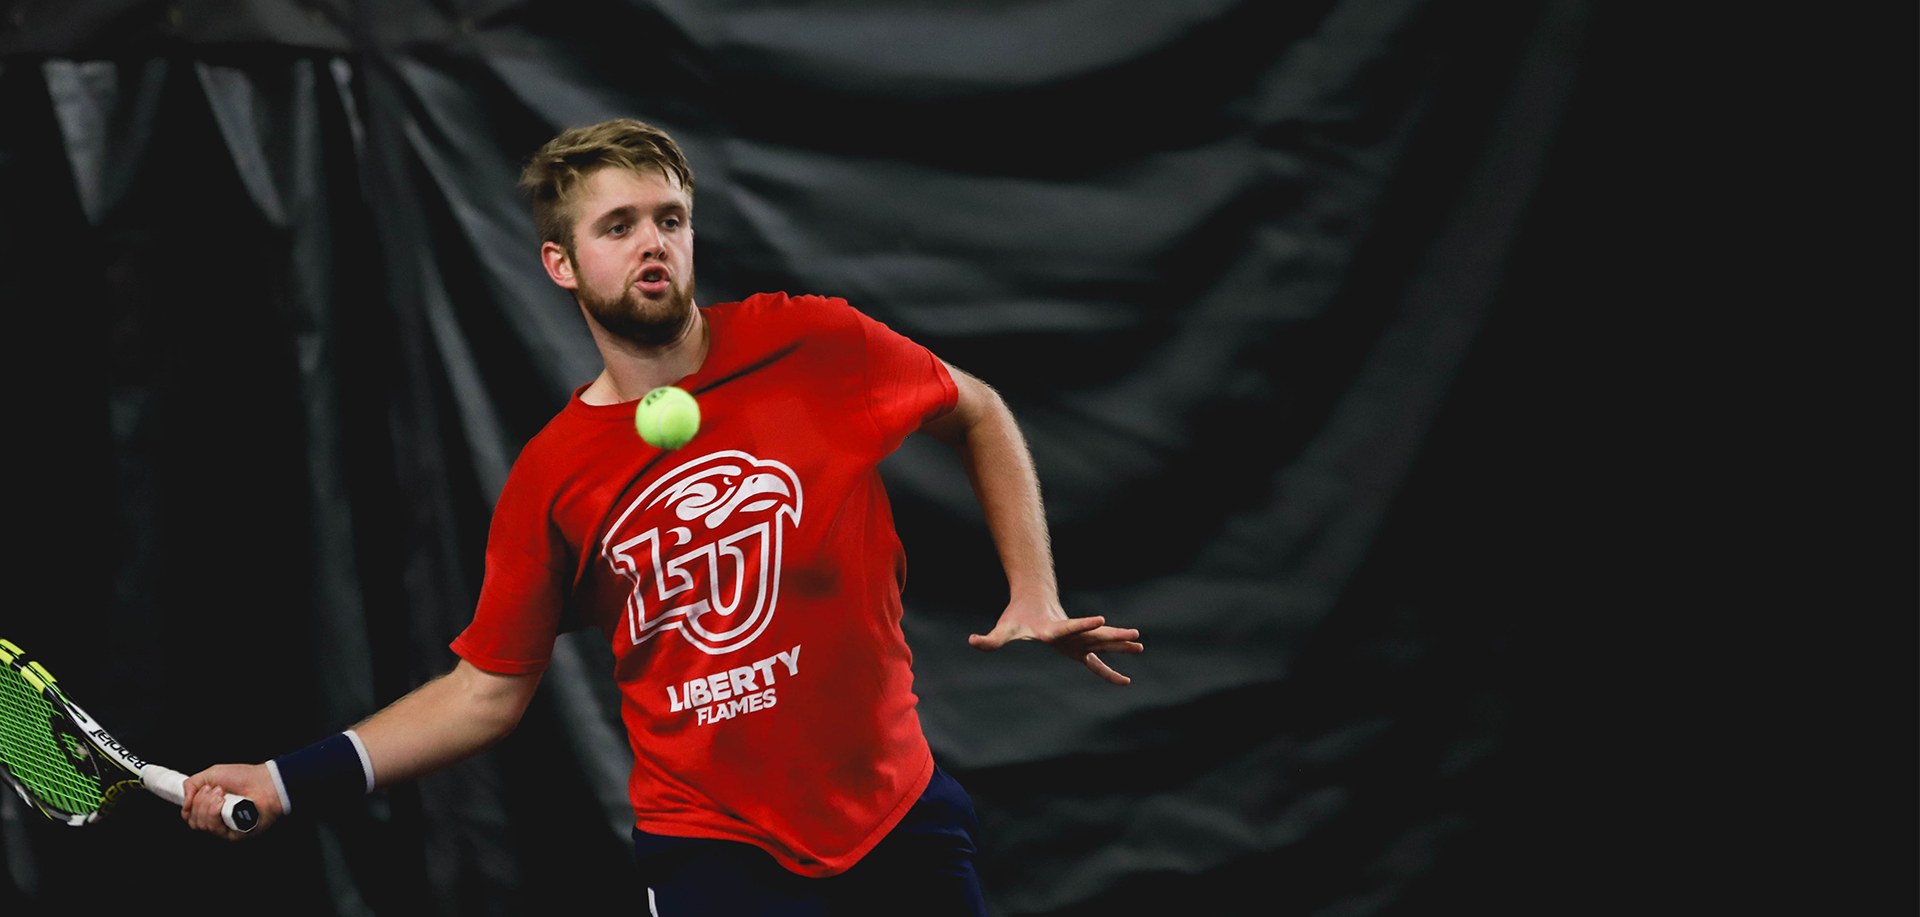 Max Borcuti and the Flames play at the ITA Atlantic Regional beginning on Thursday.